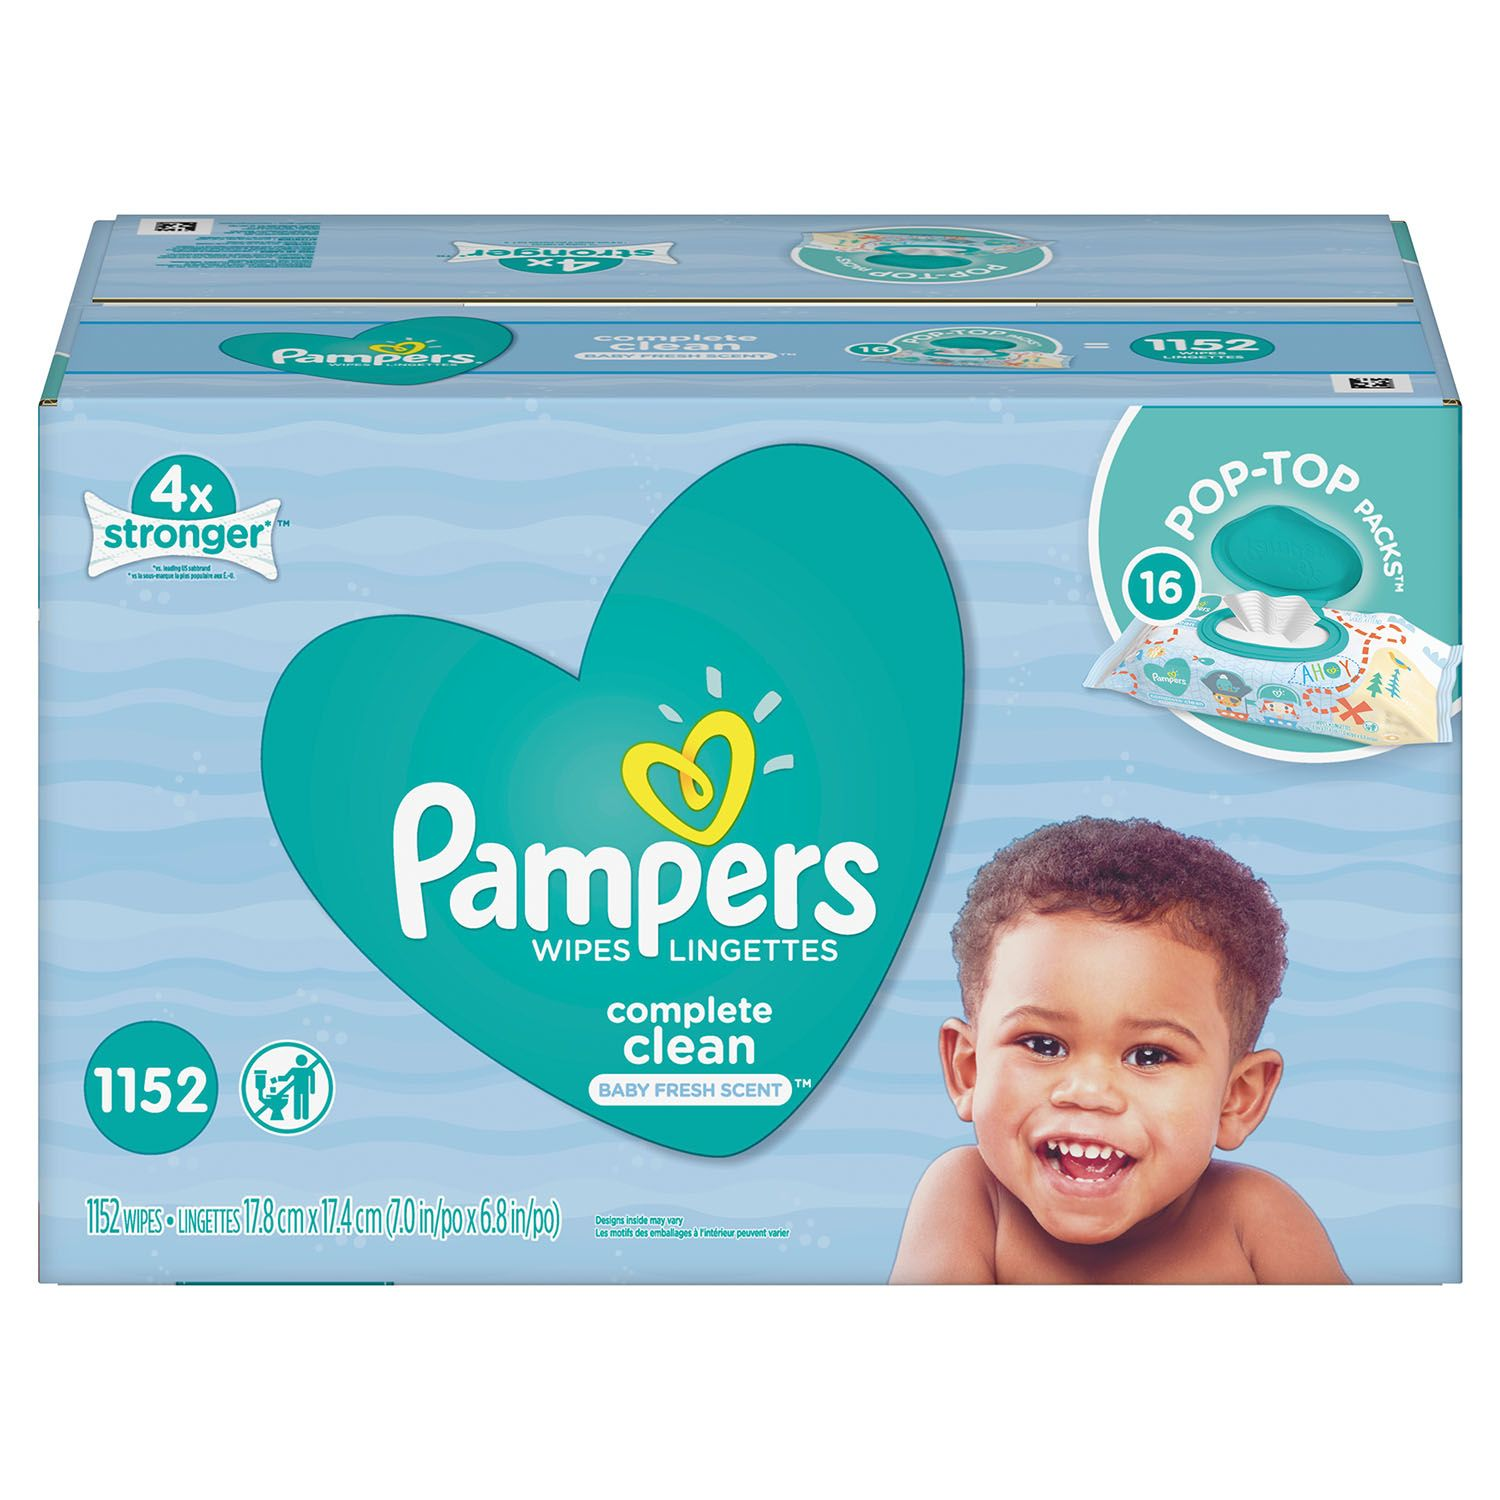 Pampers Complete Clean Baby Wipe Refills, Baby Fresh Scent (1152 ct.)